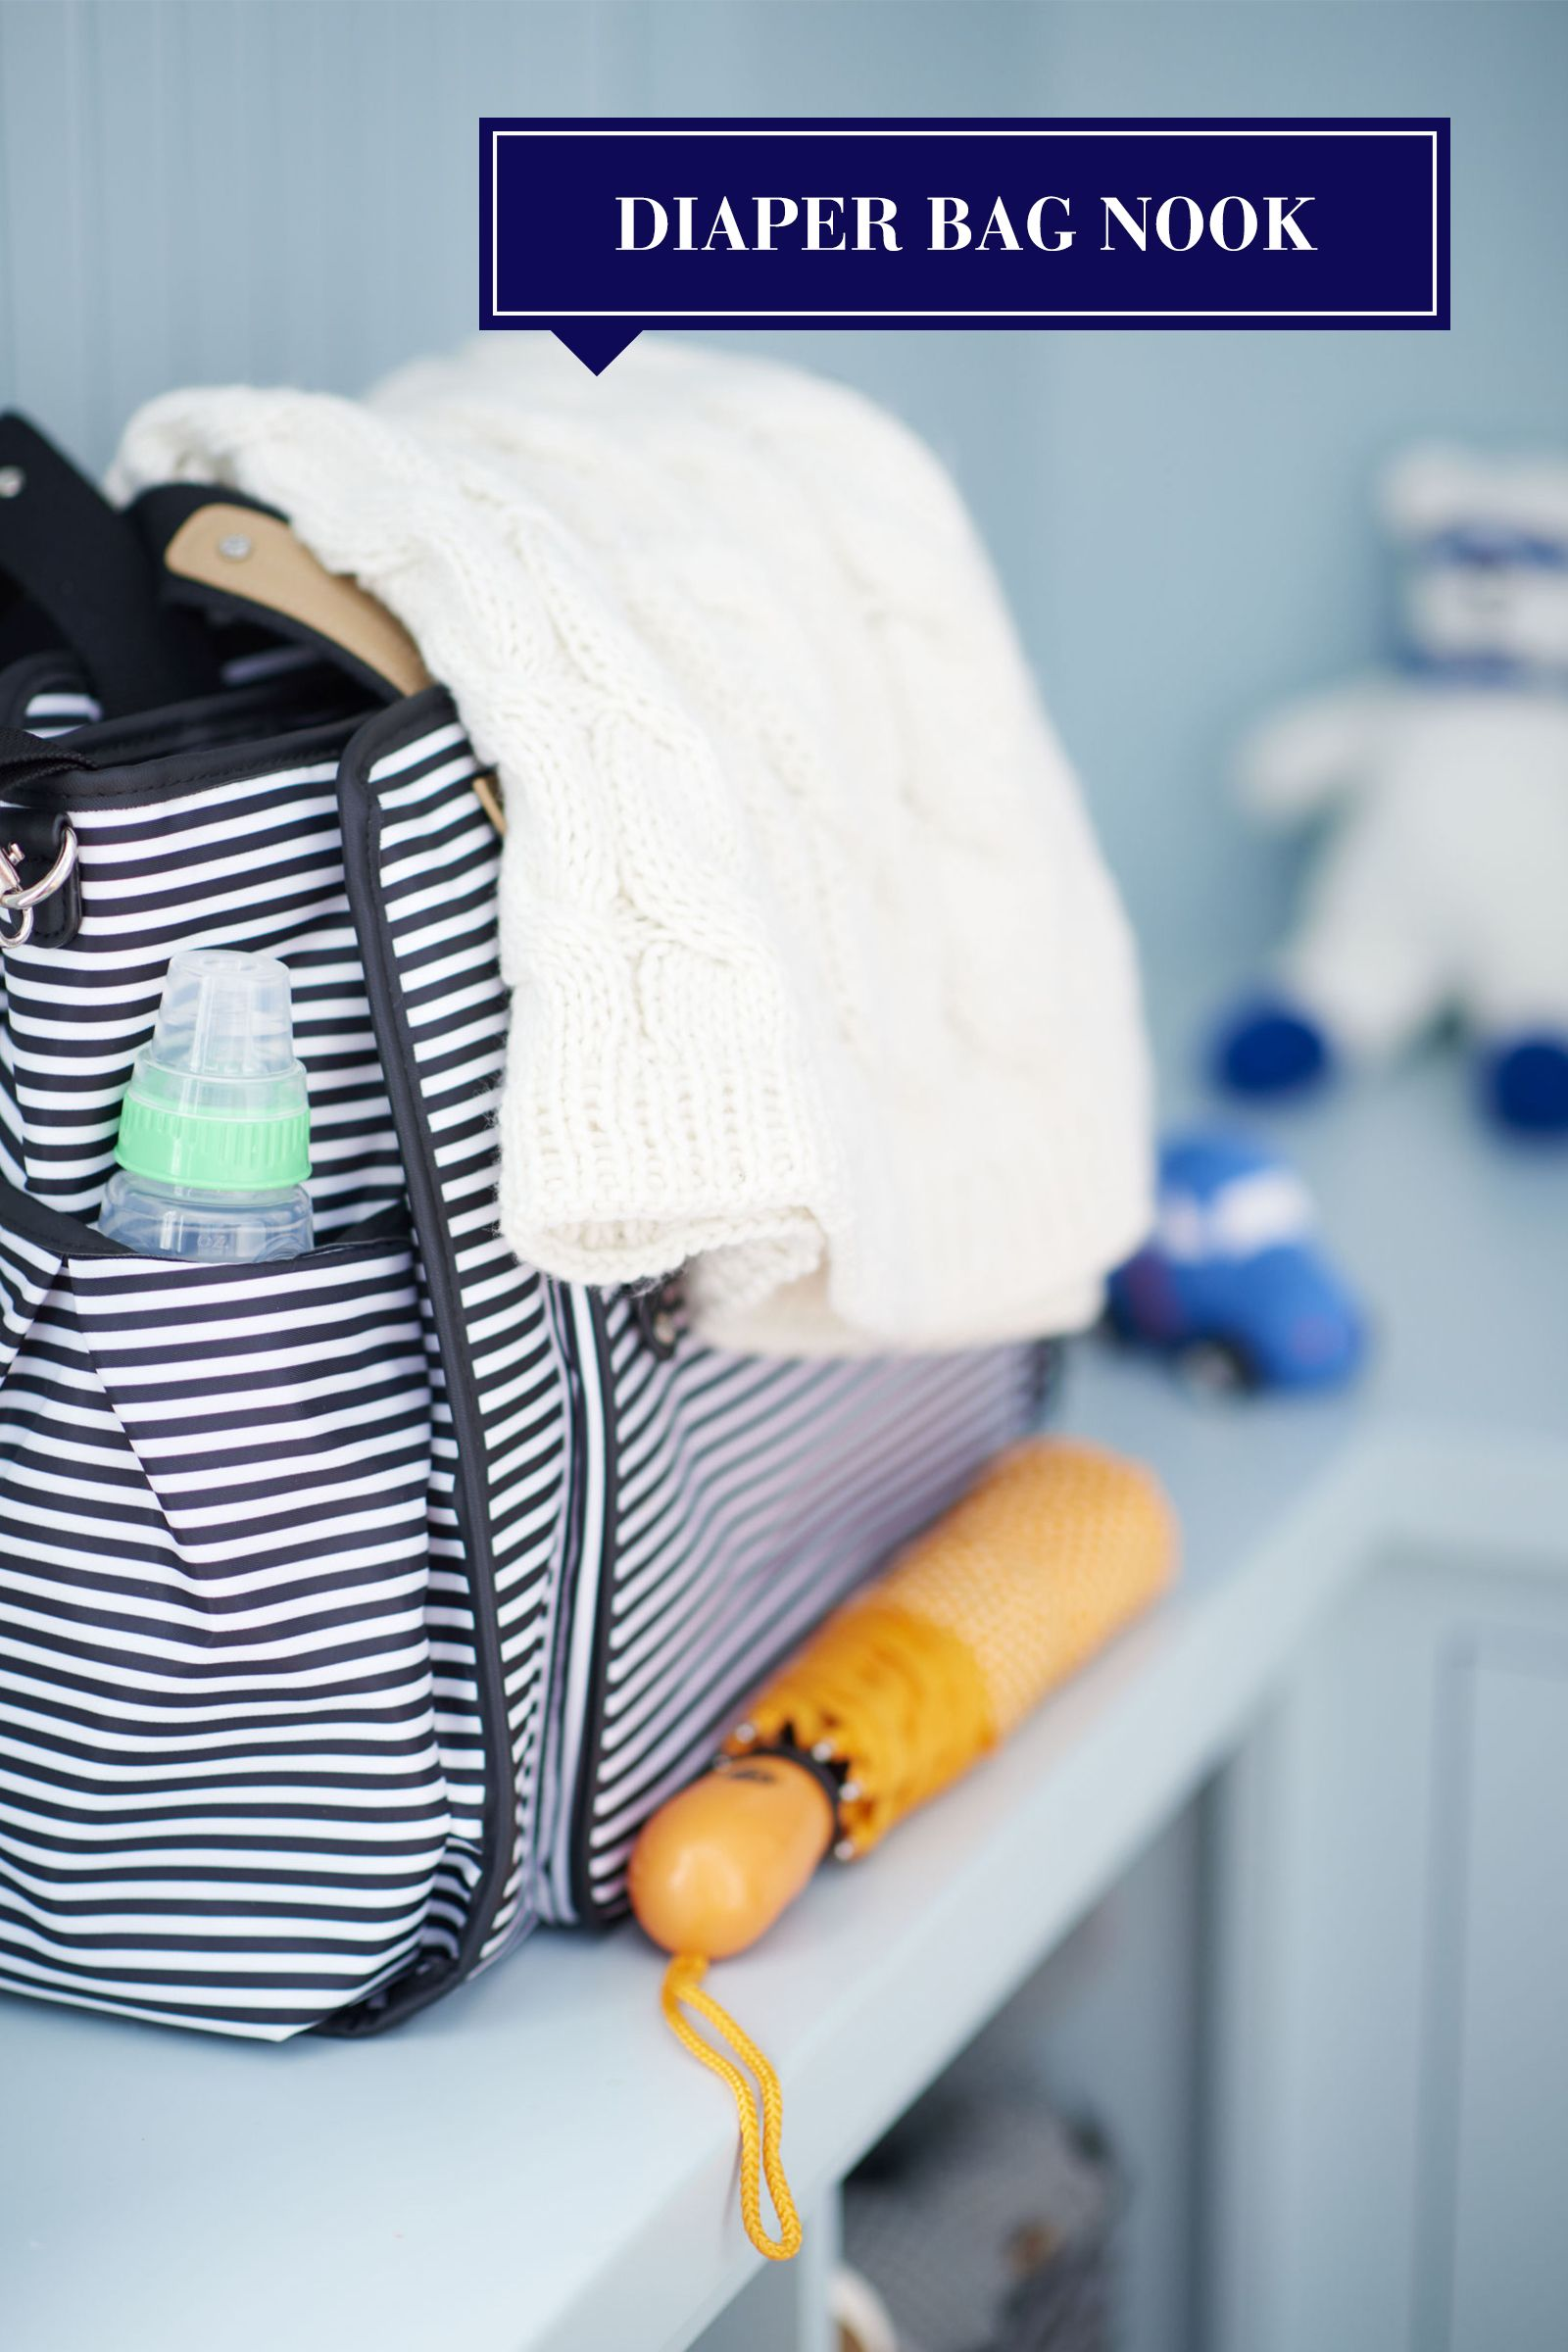 """<p>While your nursery may be the go-to for baby gear, the secret to getting out the door with a little one in tow is to keep an extra set of essentials by the entryway. Dedicate a shelf in your mudroom to diaper bag necessities (diapers, wipes, changing pads, etc.) to ensure a hasty and unharried exit.</p><p><em>Diaper bag, <a href=""""http://www.skiphop.com/product/diaperbags/grandcentraldiaperbag.html"""" target=""""_blank"""">skiphop.com</a>; car rattle and knit bear, <a href=""""http://www.estella-nyc.com/"""" target=""""_blank"""">estrella-nyc.com</a></em><br></p>"""